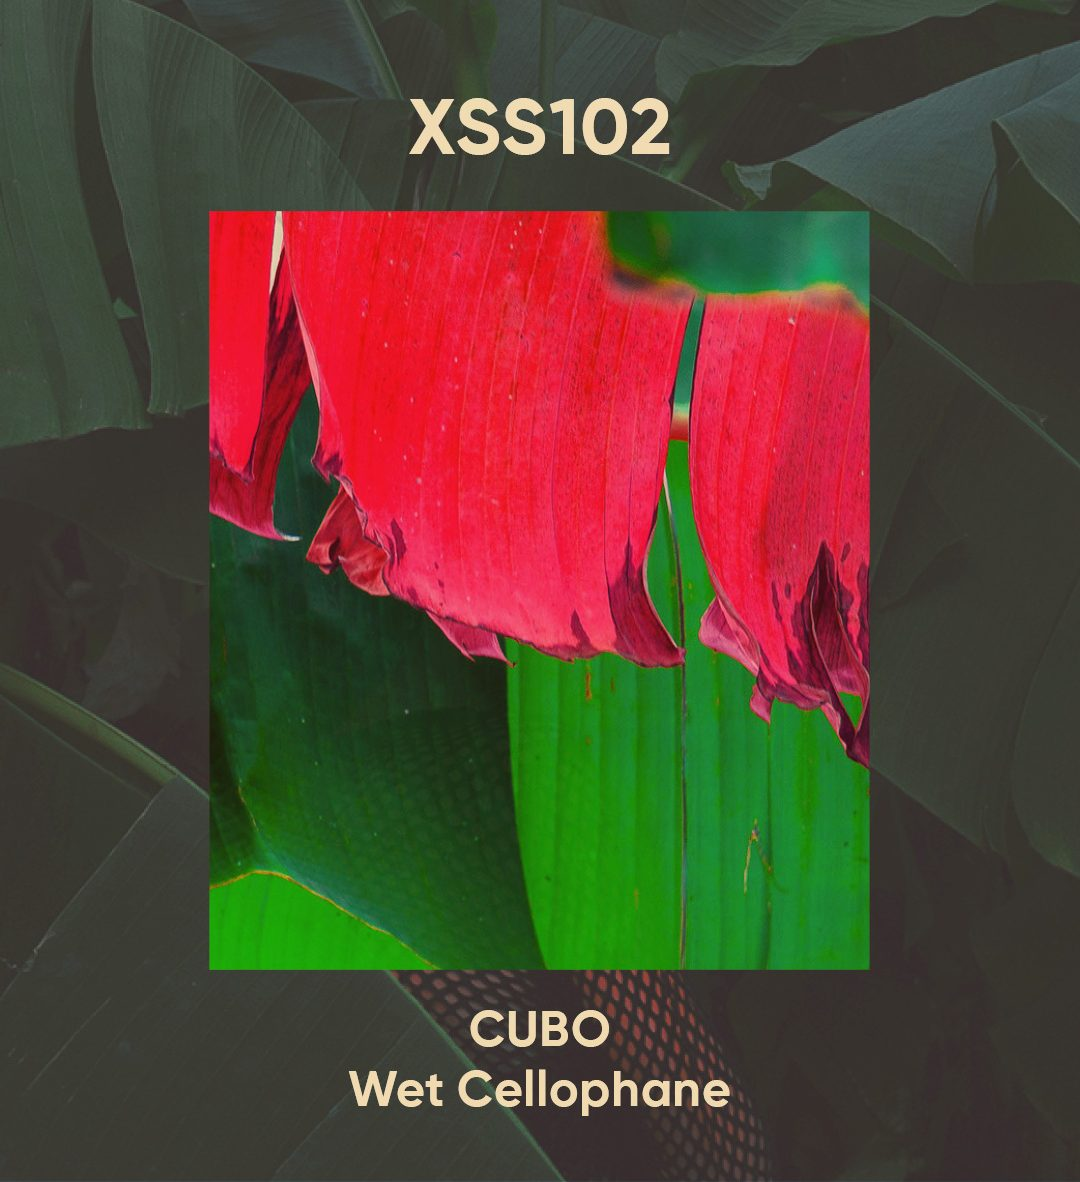 XSS102 | Cubo | Wet Cellophane